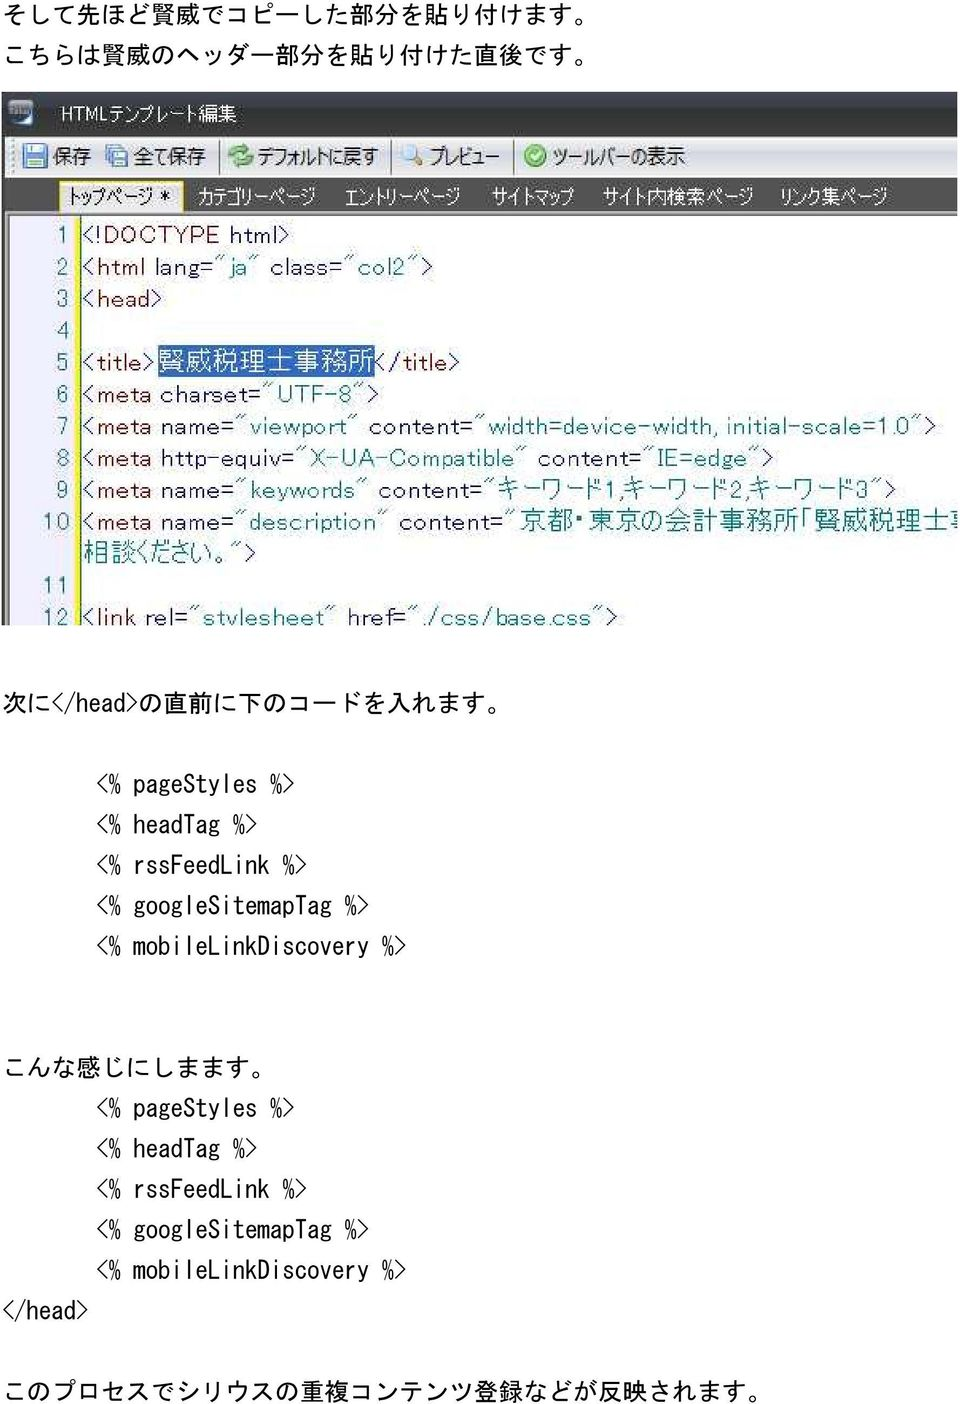 mobilelinkdiscovery %> こんな 感 じにしまます <% pagestyles %> <% headtag %> <% rssfeedlink %> <%